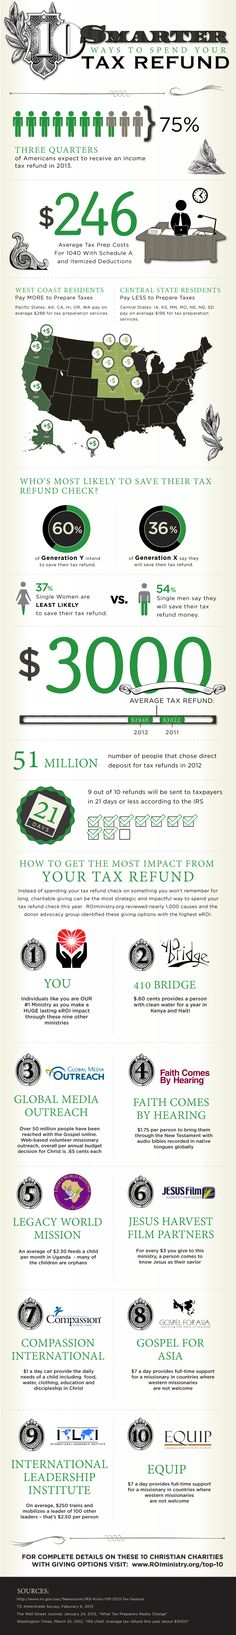 Top 10 Smarter Ways To Spend Your Tax Refund Check